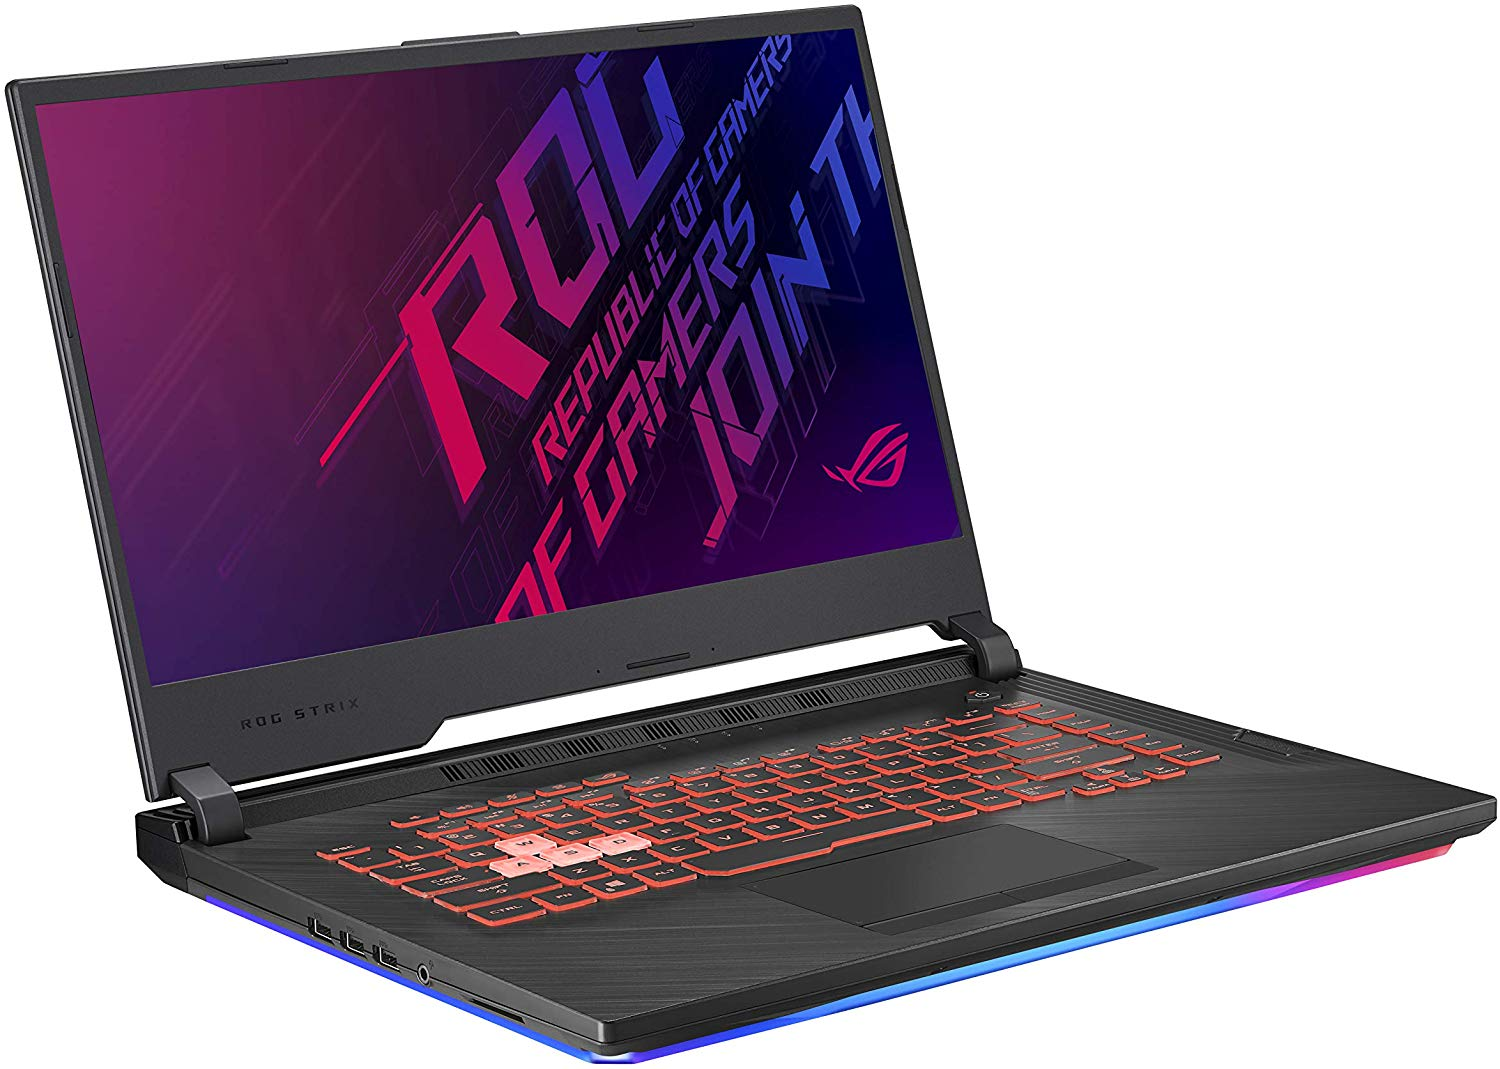 Asus ROG GL702VM-GC143T Gaming Notebook